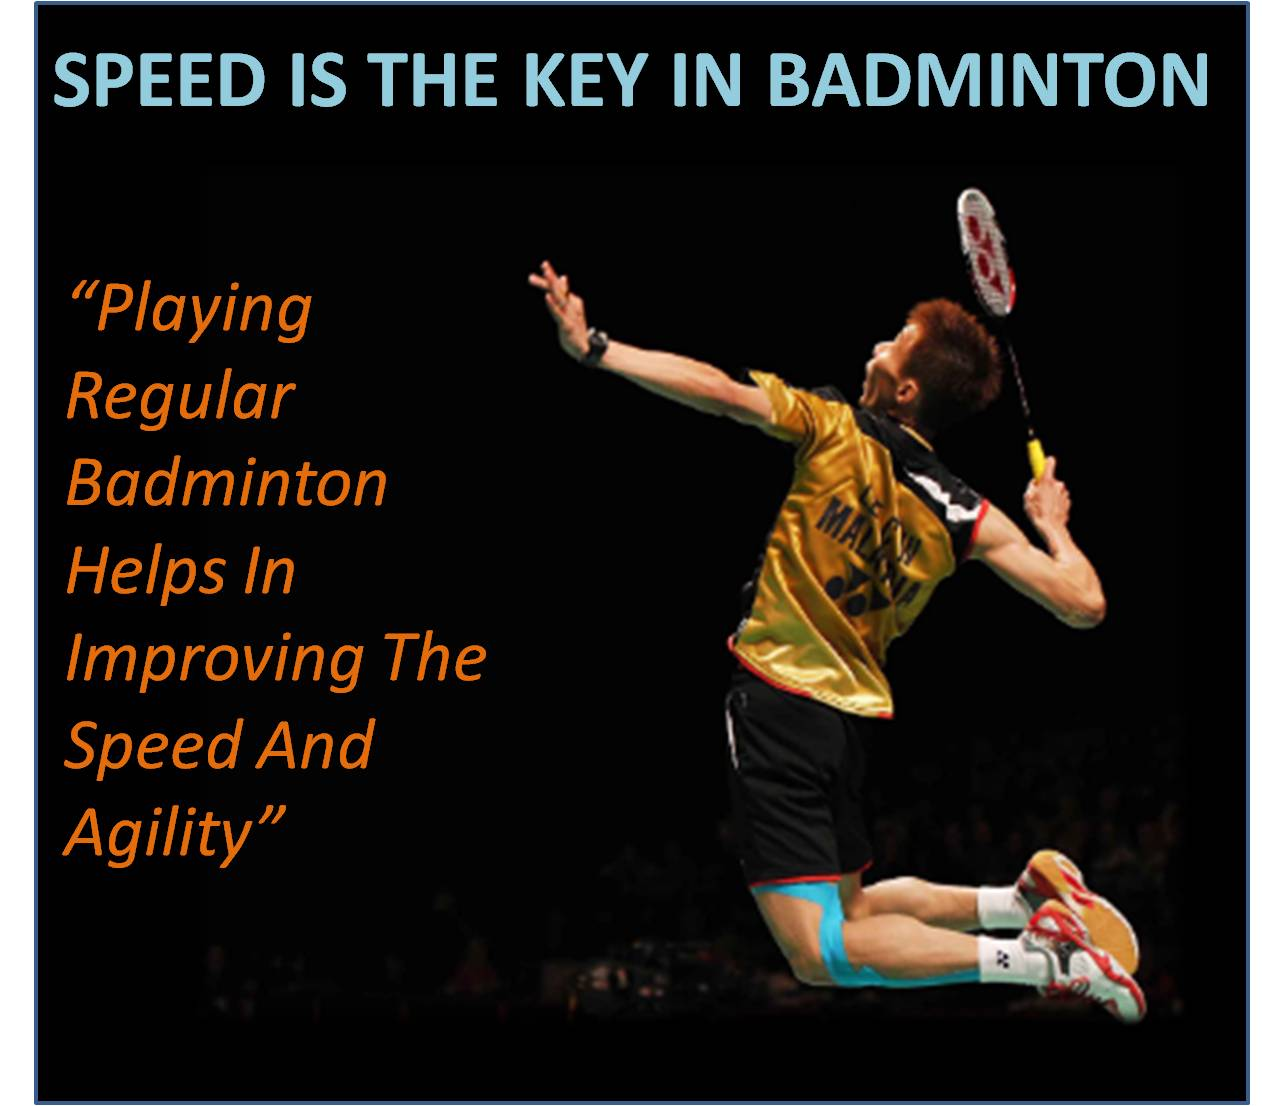 BENEFITS_OF_PLAYING_BADMINTON_Speed_Agility